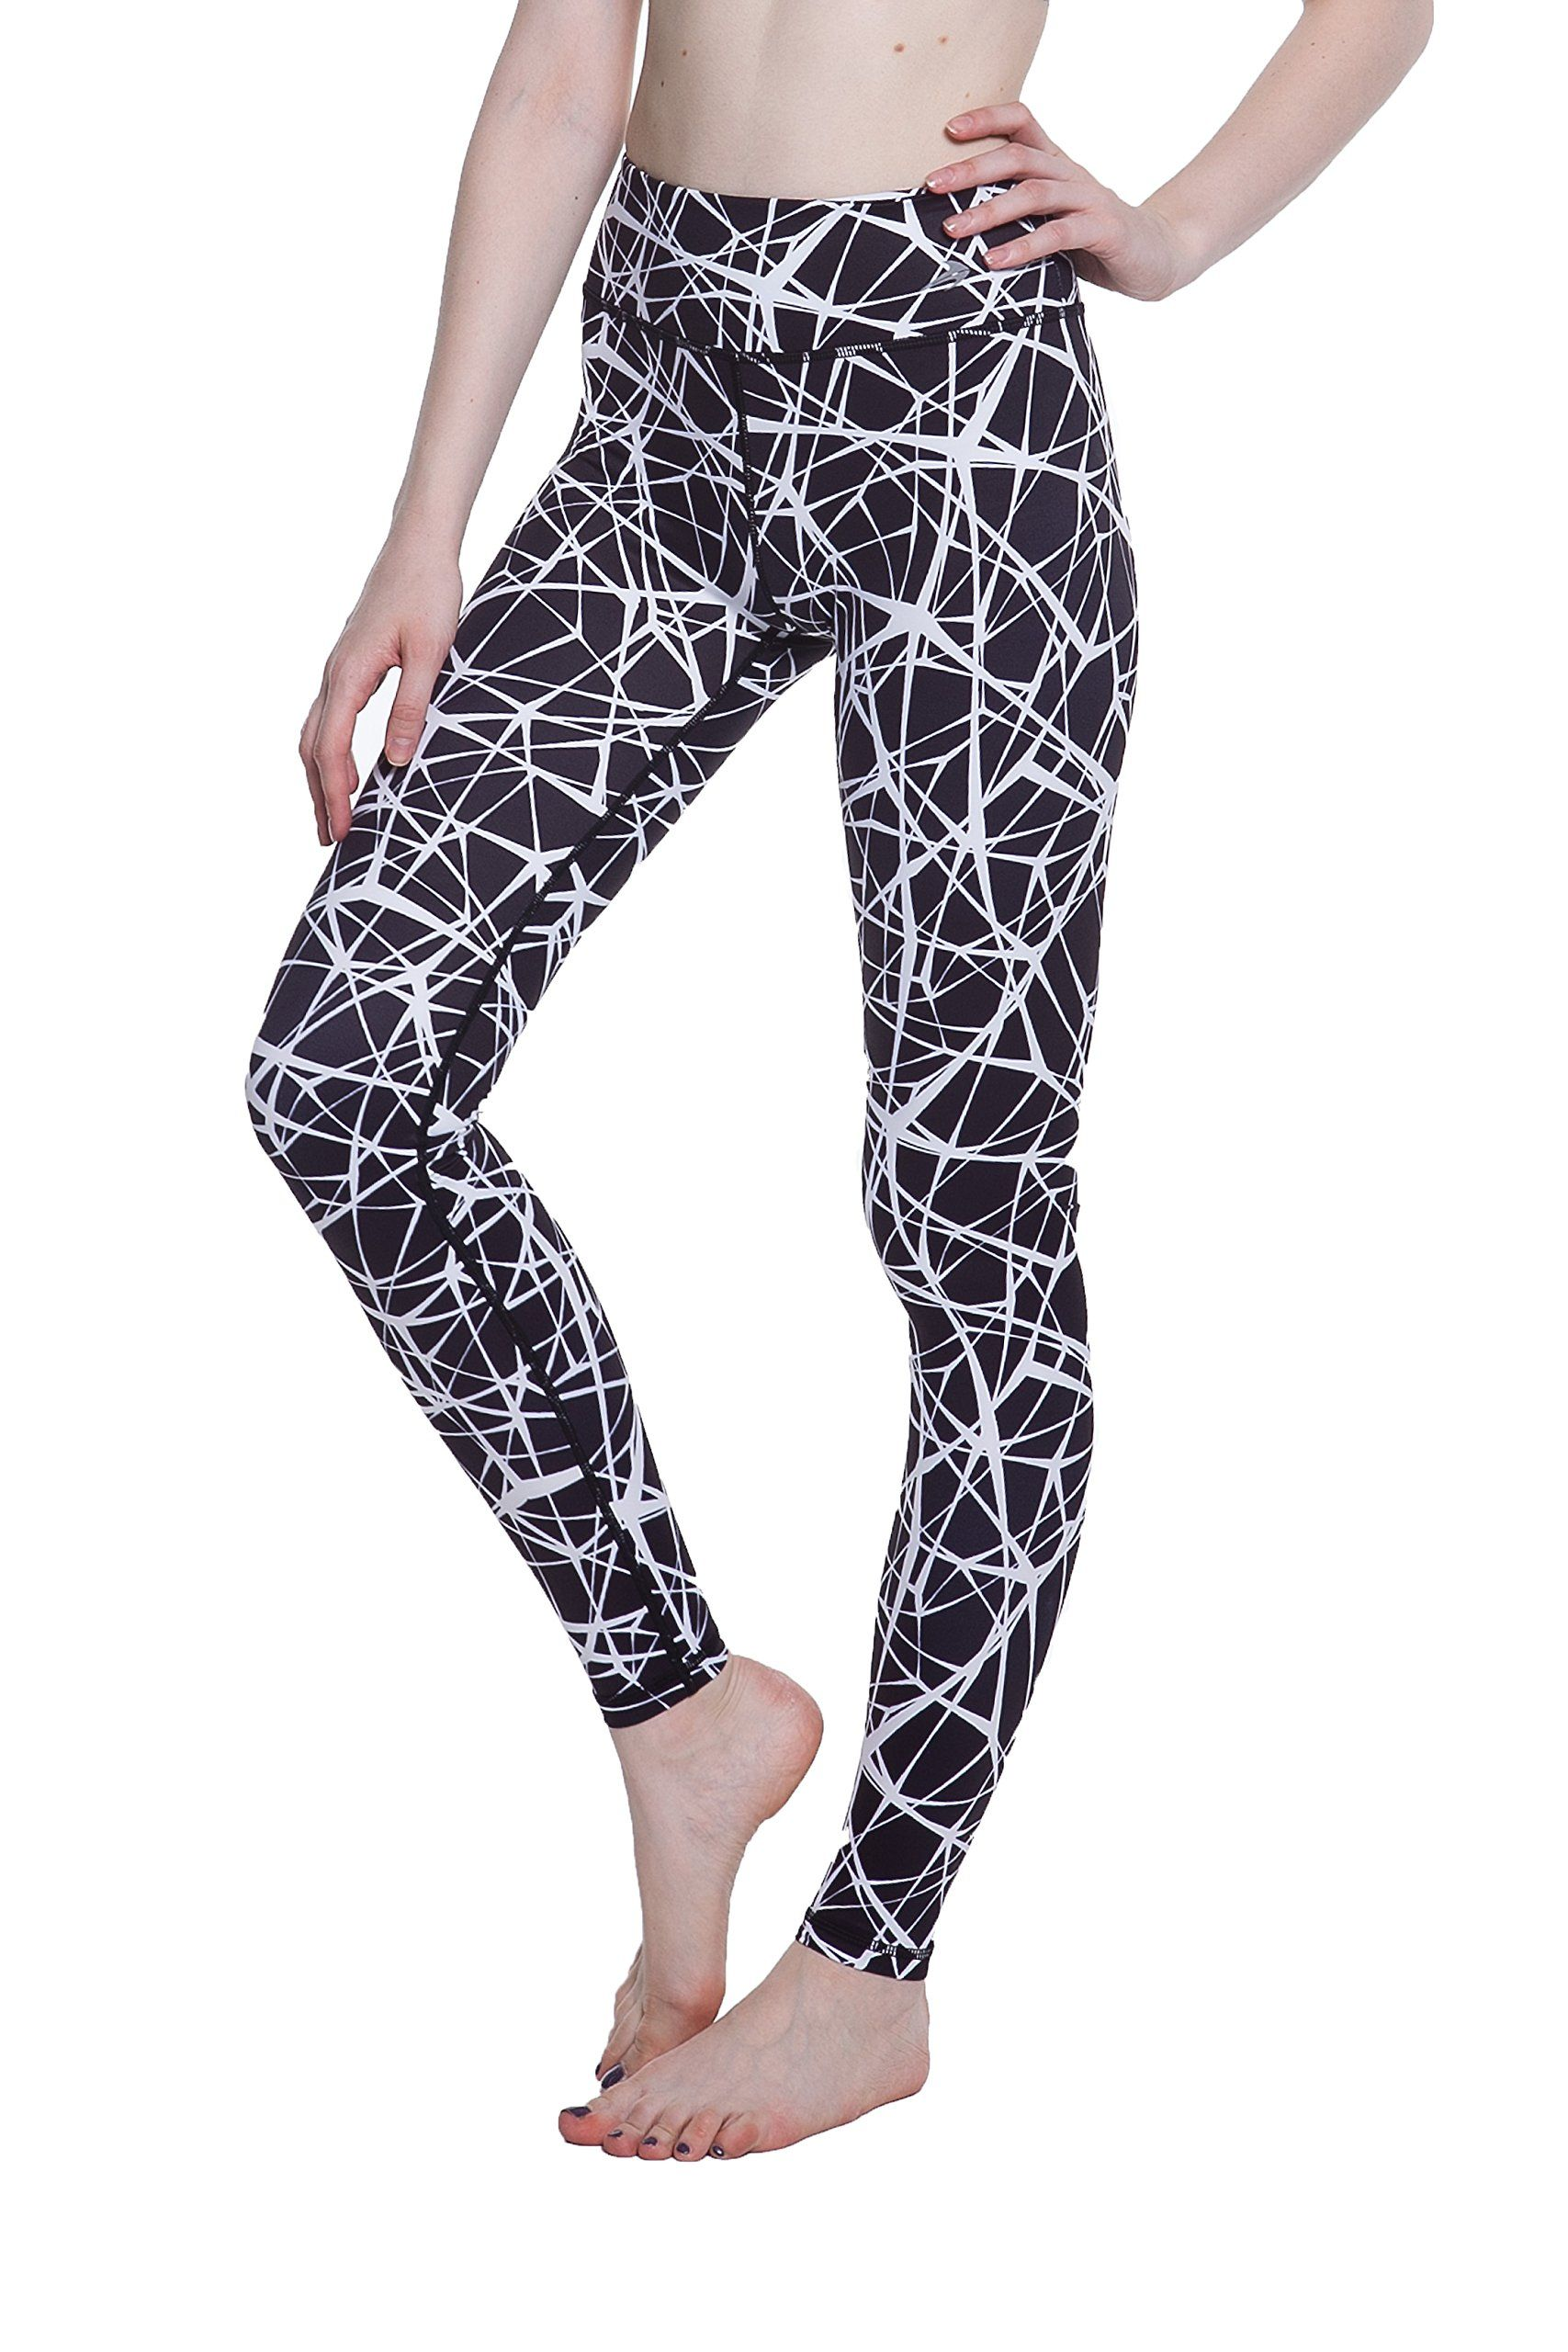 9f71c13a79 Women's Compression Pants (Tangled White - M) Best Full Leggings Tights for  Running,